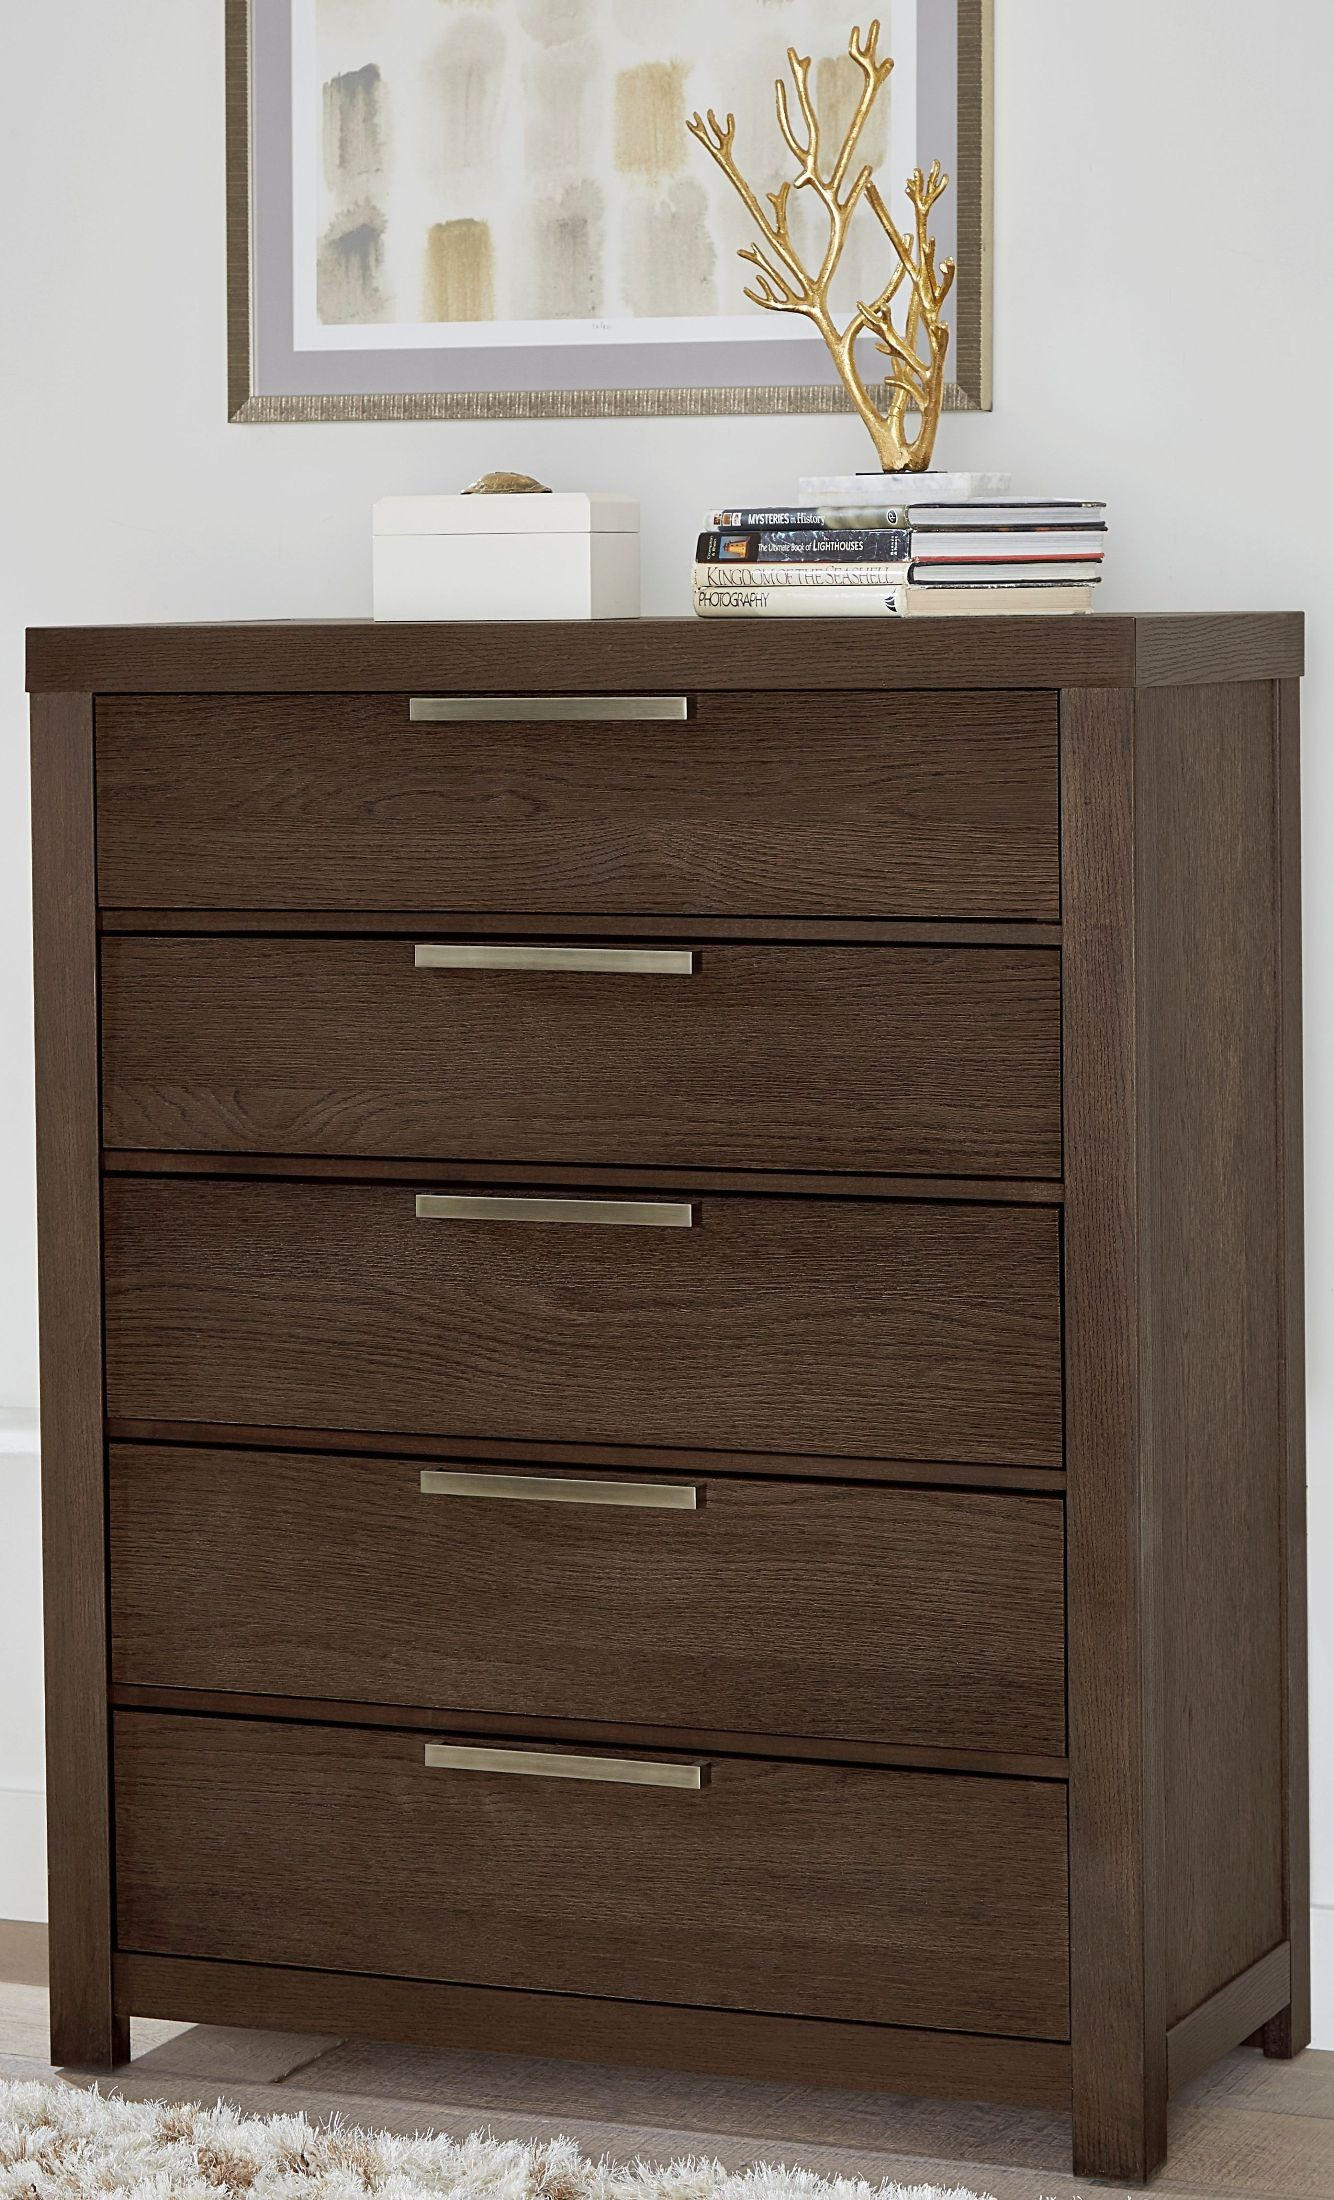 American Modern Mocha 5 Drawer Chest from Virginia House